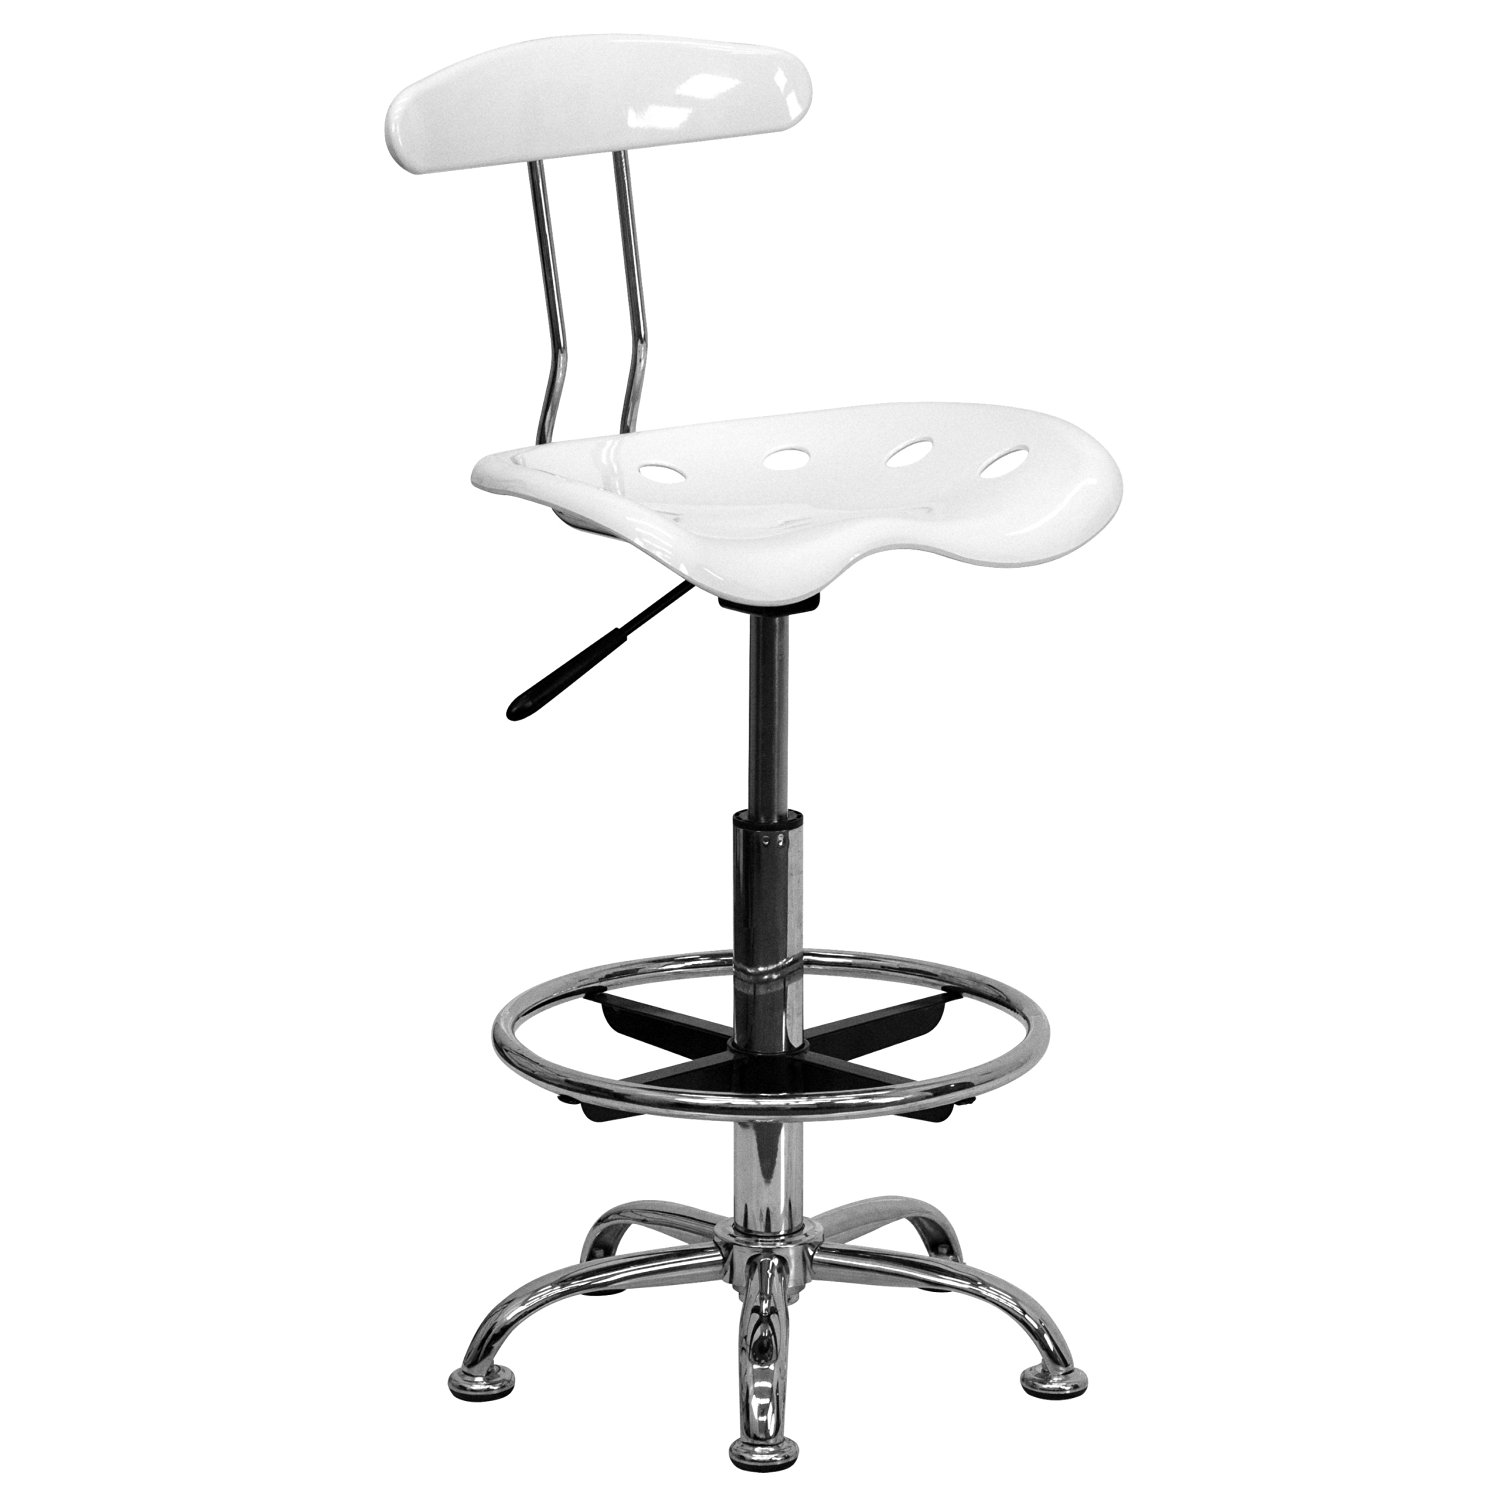 Thornton's Office Supply Vibrant White and Chrome Drafting Stool with Tractor Seat